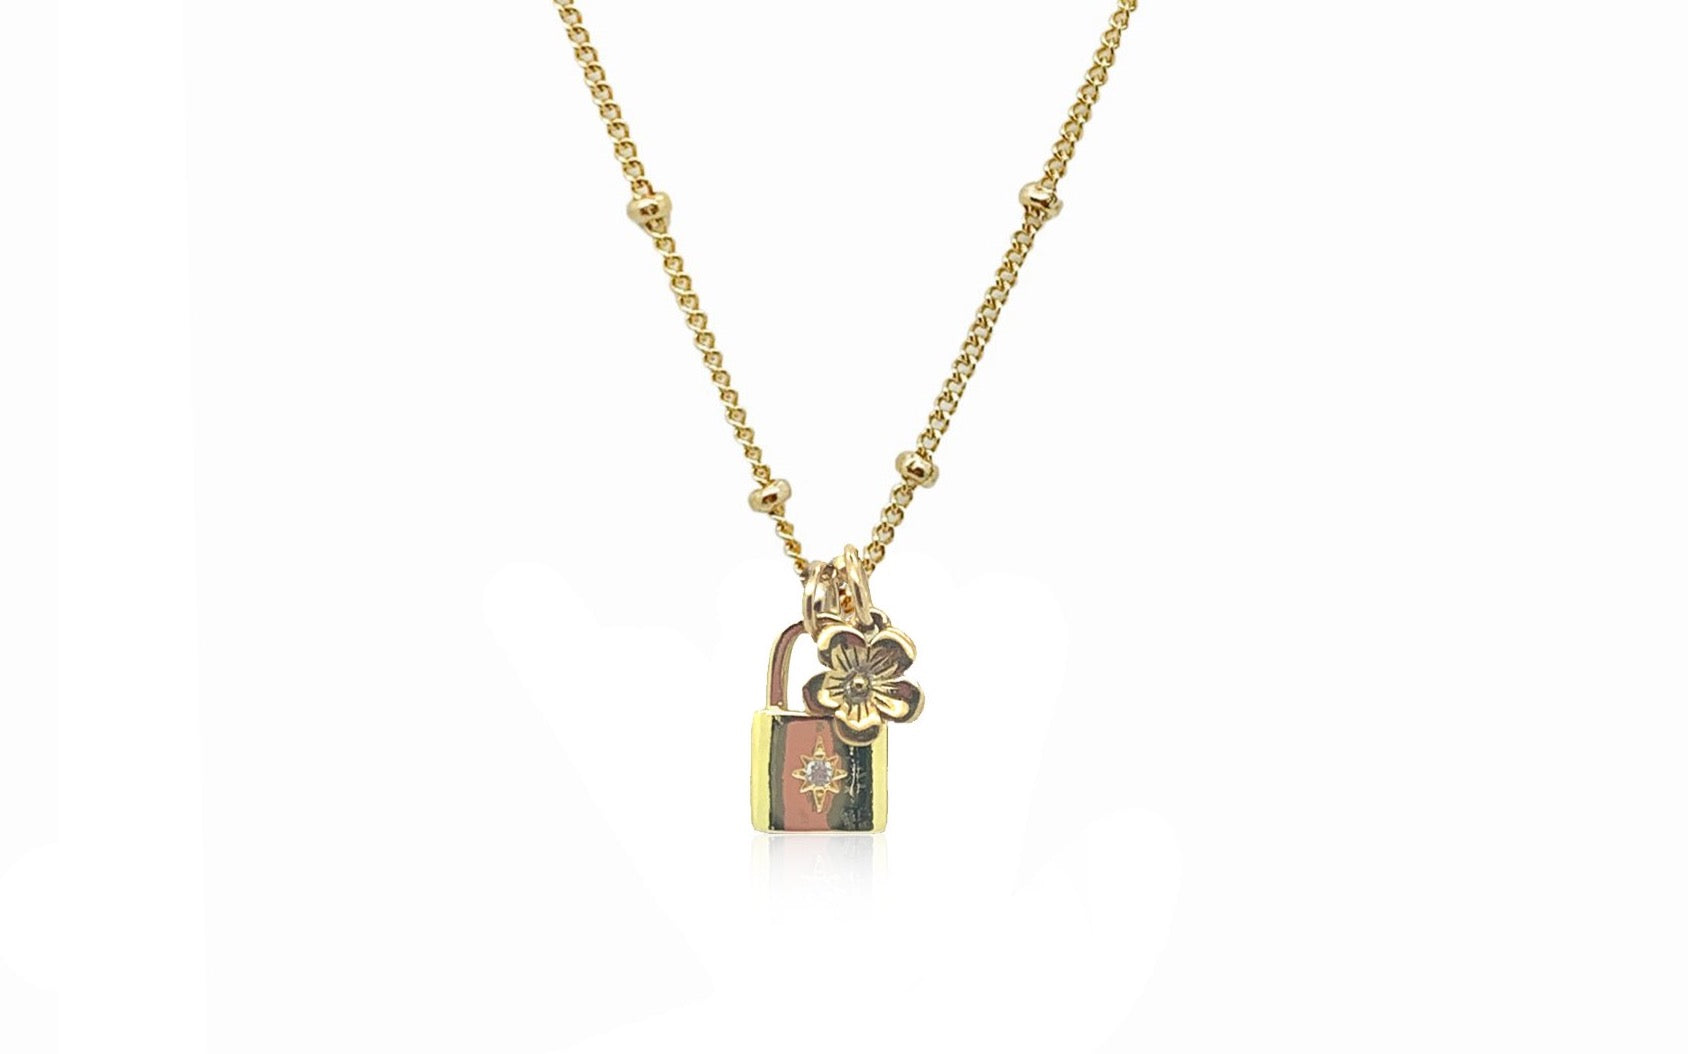 Cherry Blossom Locket Charm Necklace